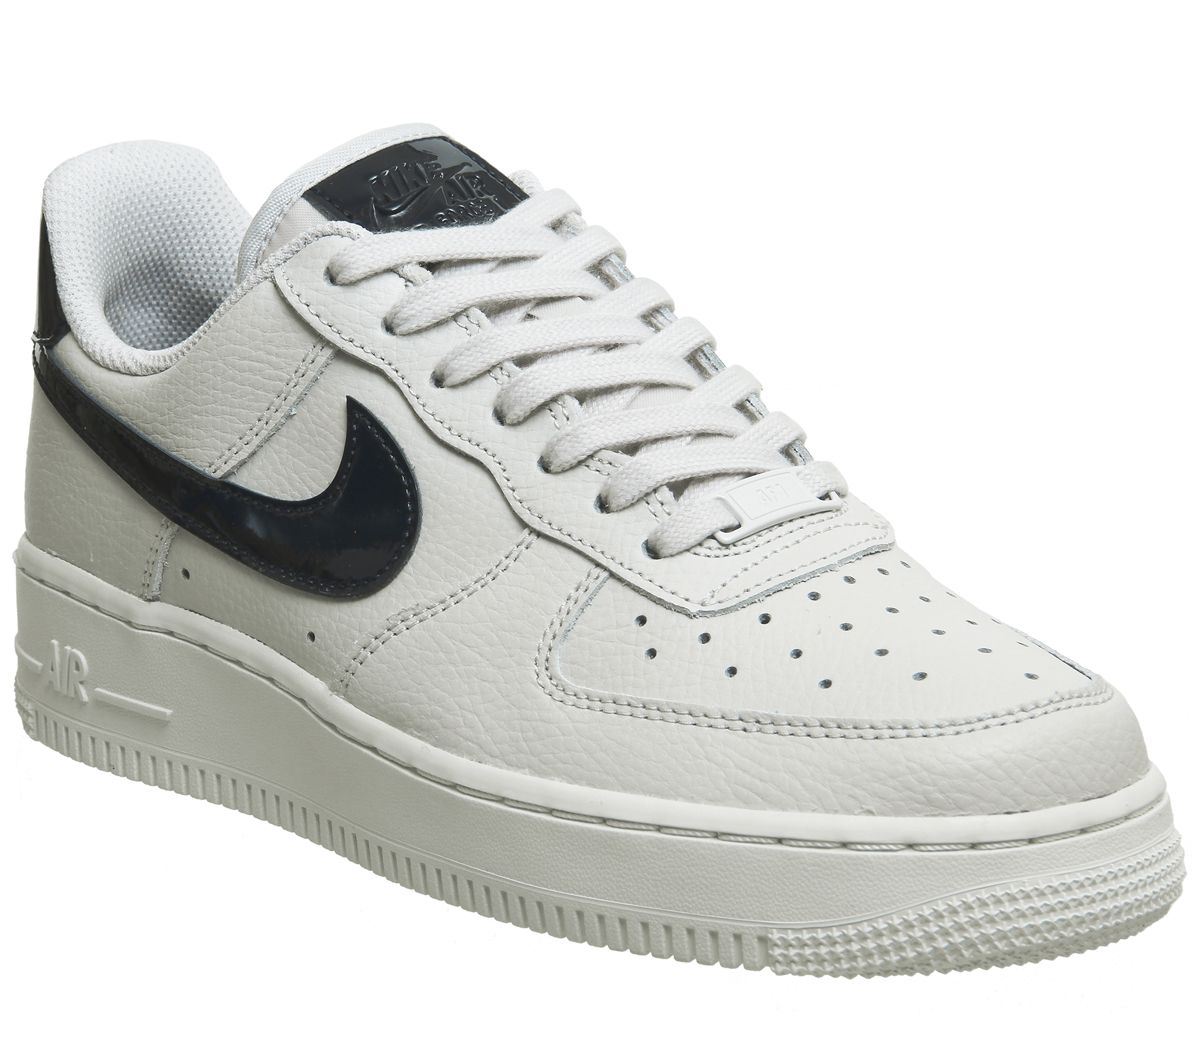 new products 01845 3ce54 Nike Air Force 1 07 Trainers Vast Grey Obsidian - Hers trainers